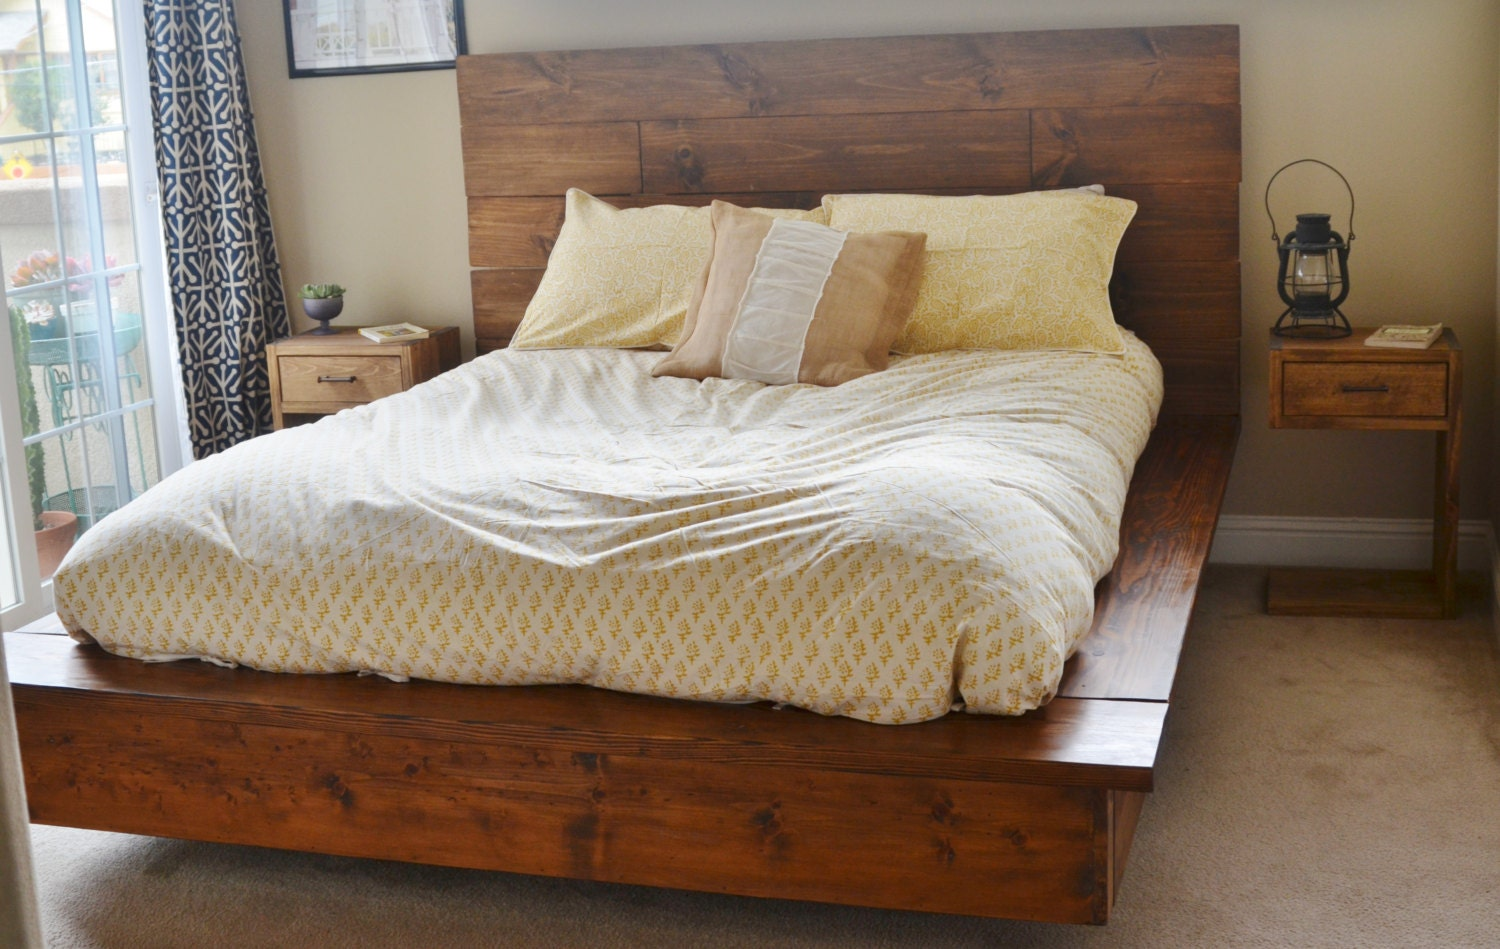 to c image view pottery kids bed zoom products platform owen barn over storage larger roll